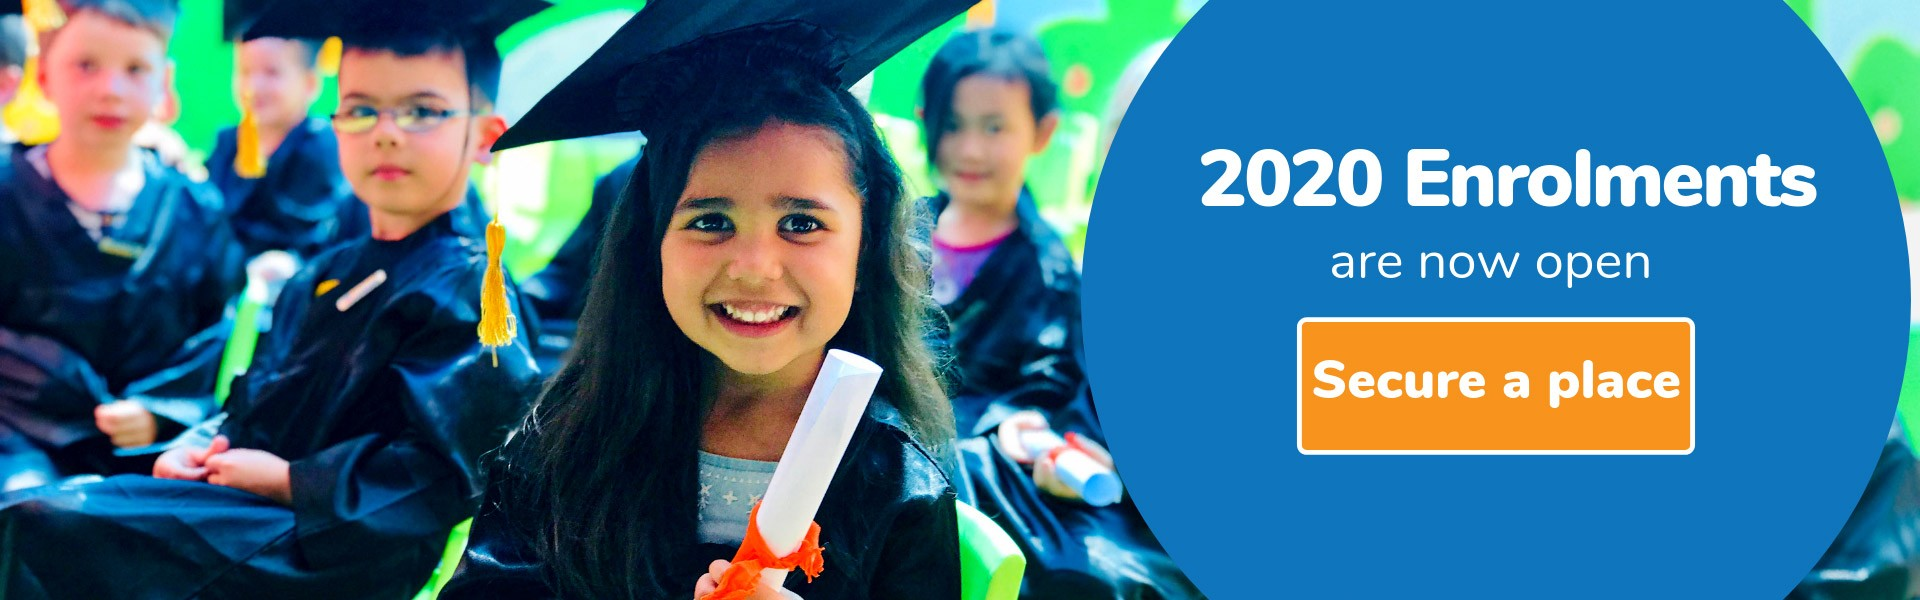 Oz Education Early Learning, Childcare and Preschool